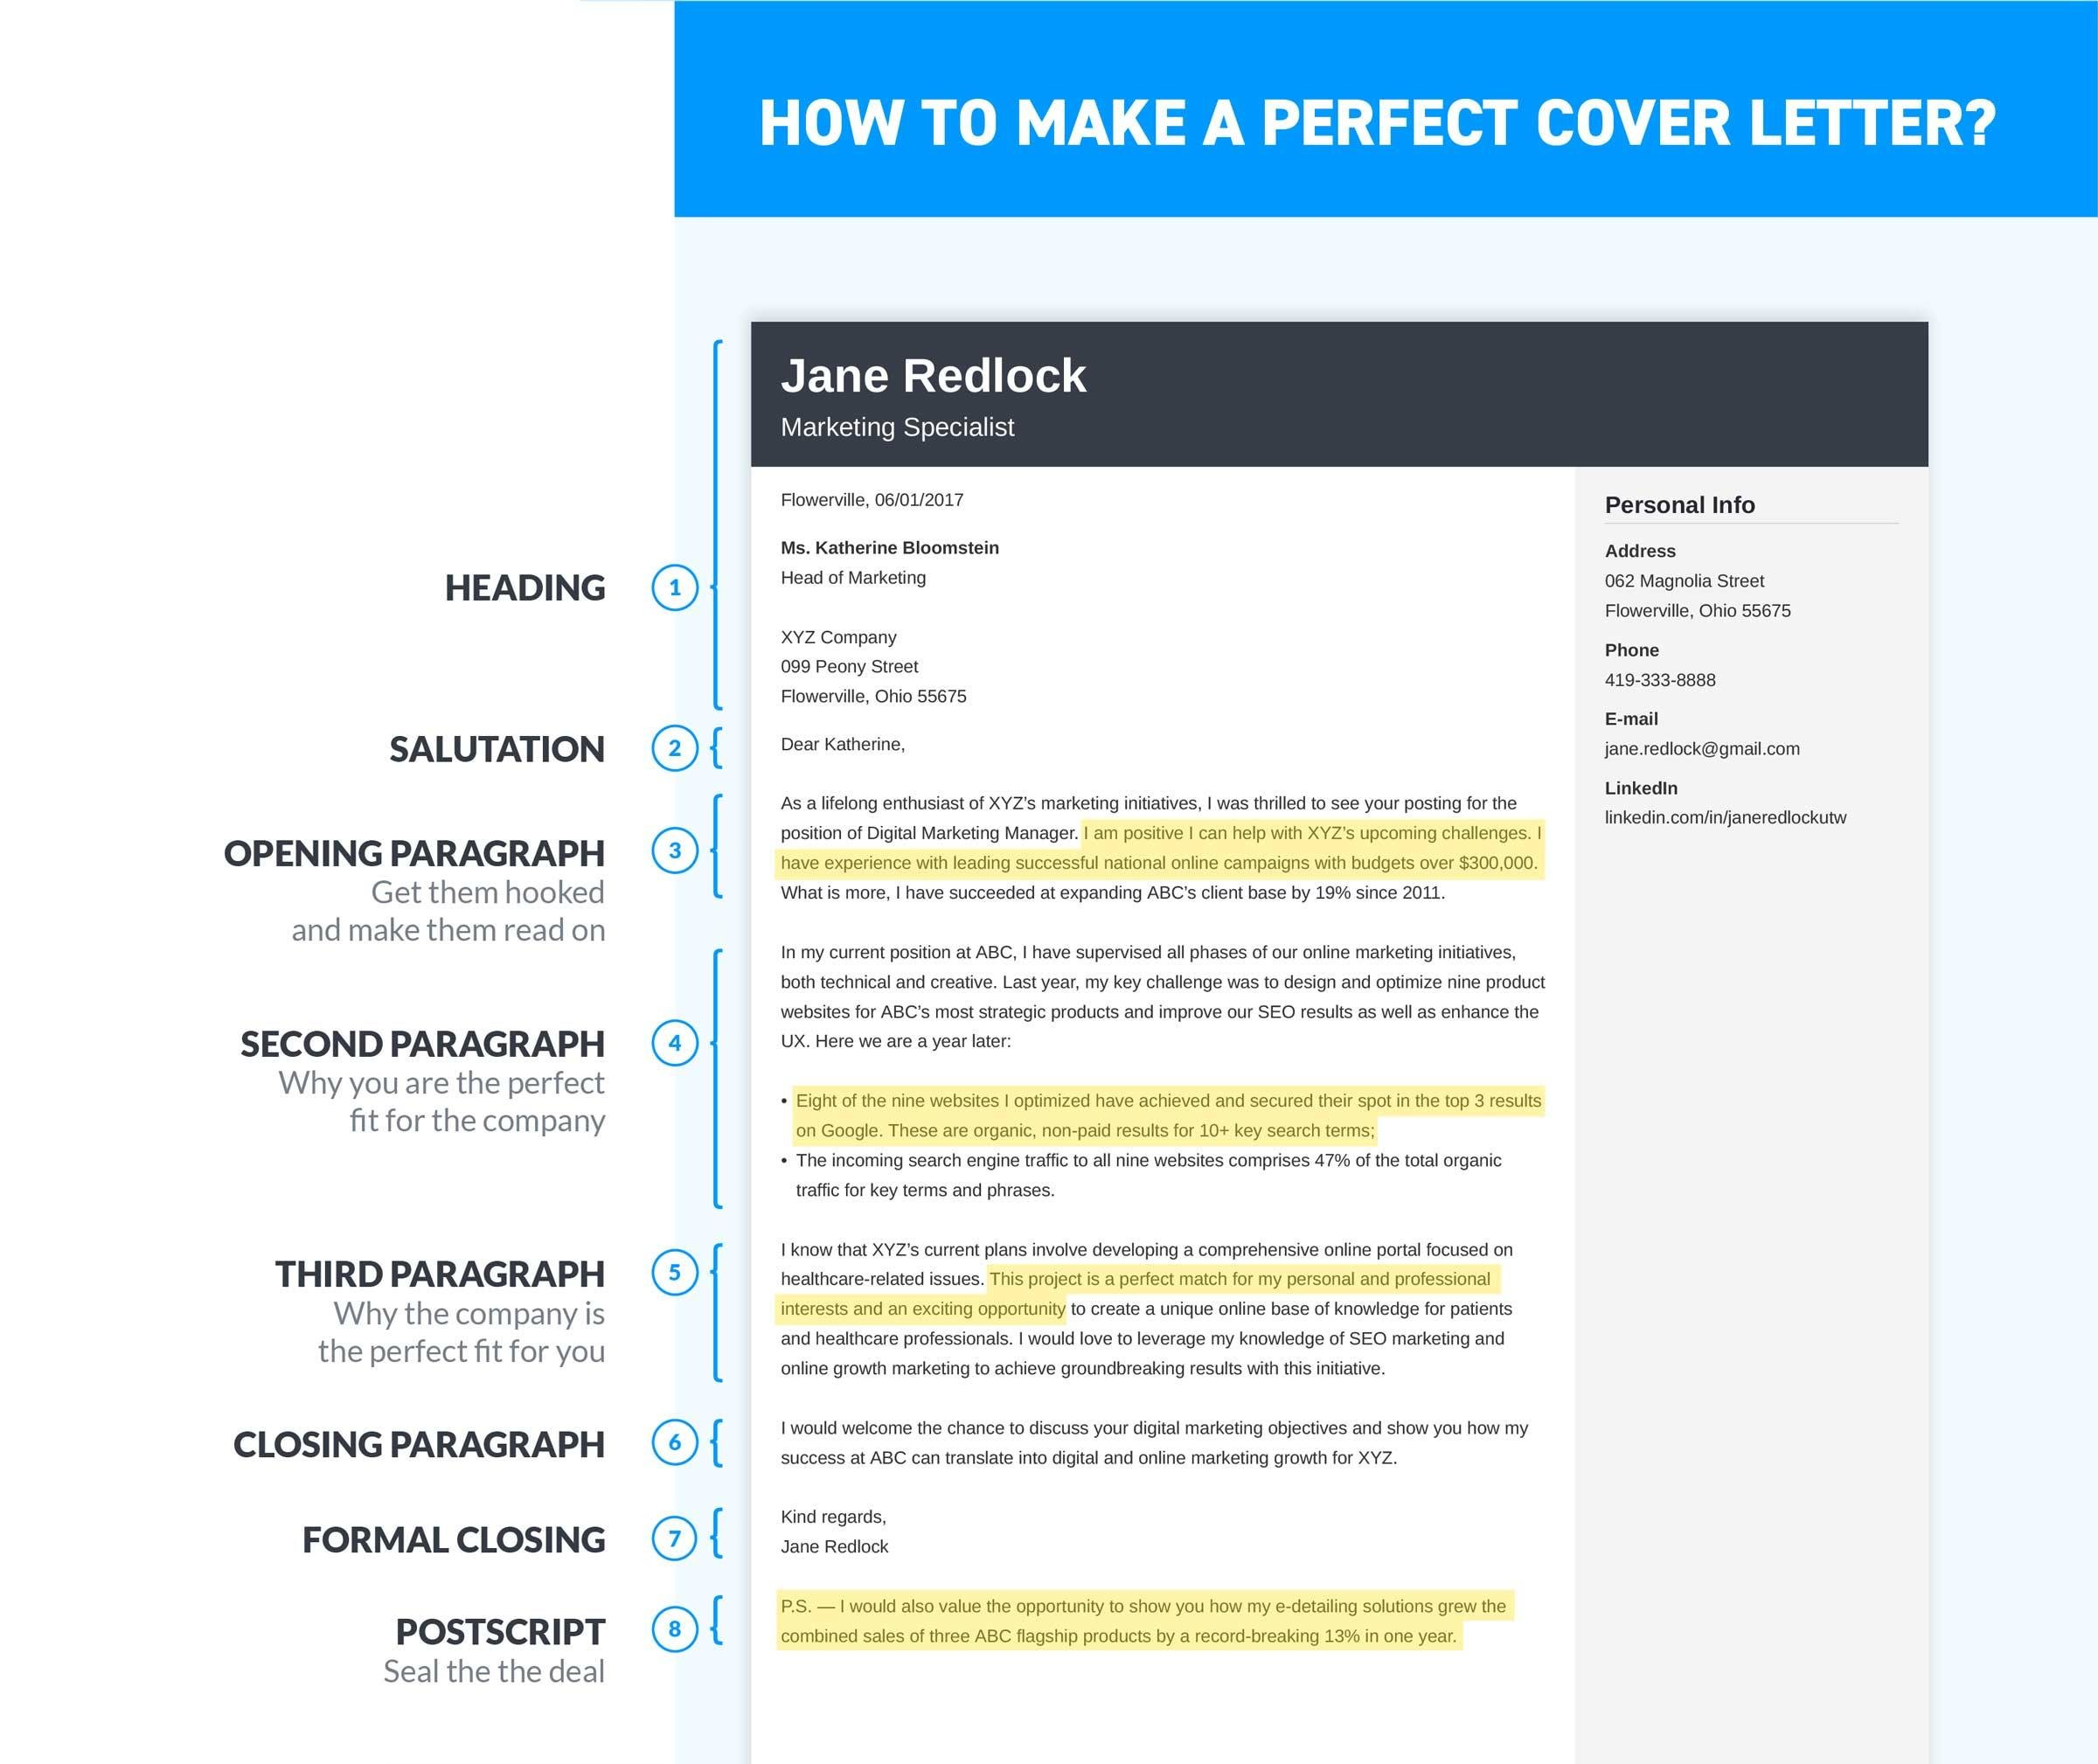 How to Write a Cover Letter in No Time